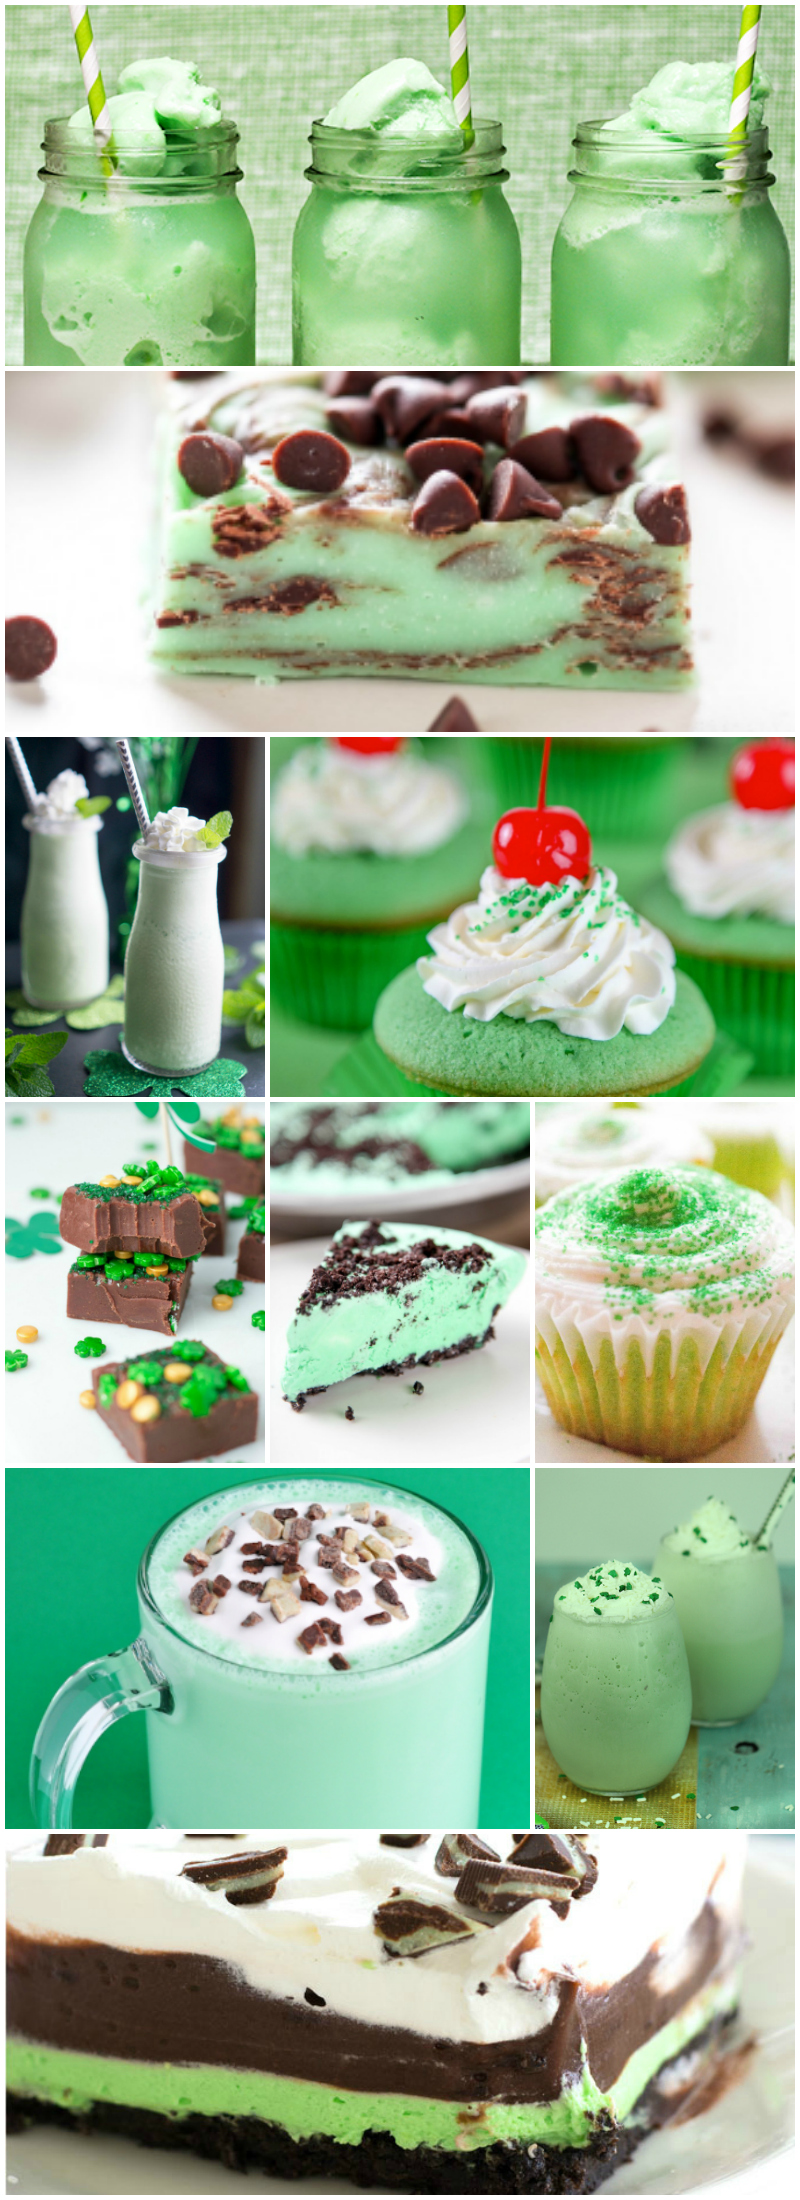 21 Green Desserts for St. Patrick's Day - Food Blogger Recipe Round Up